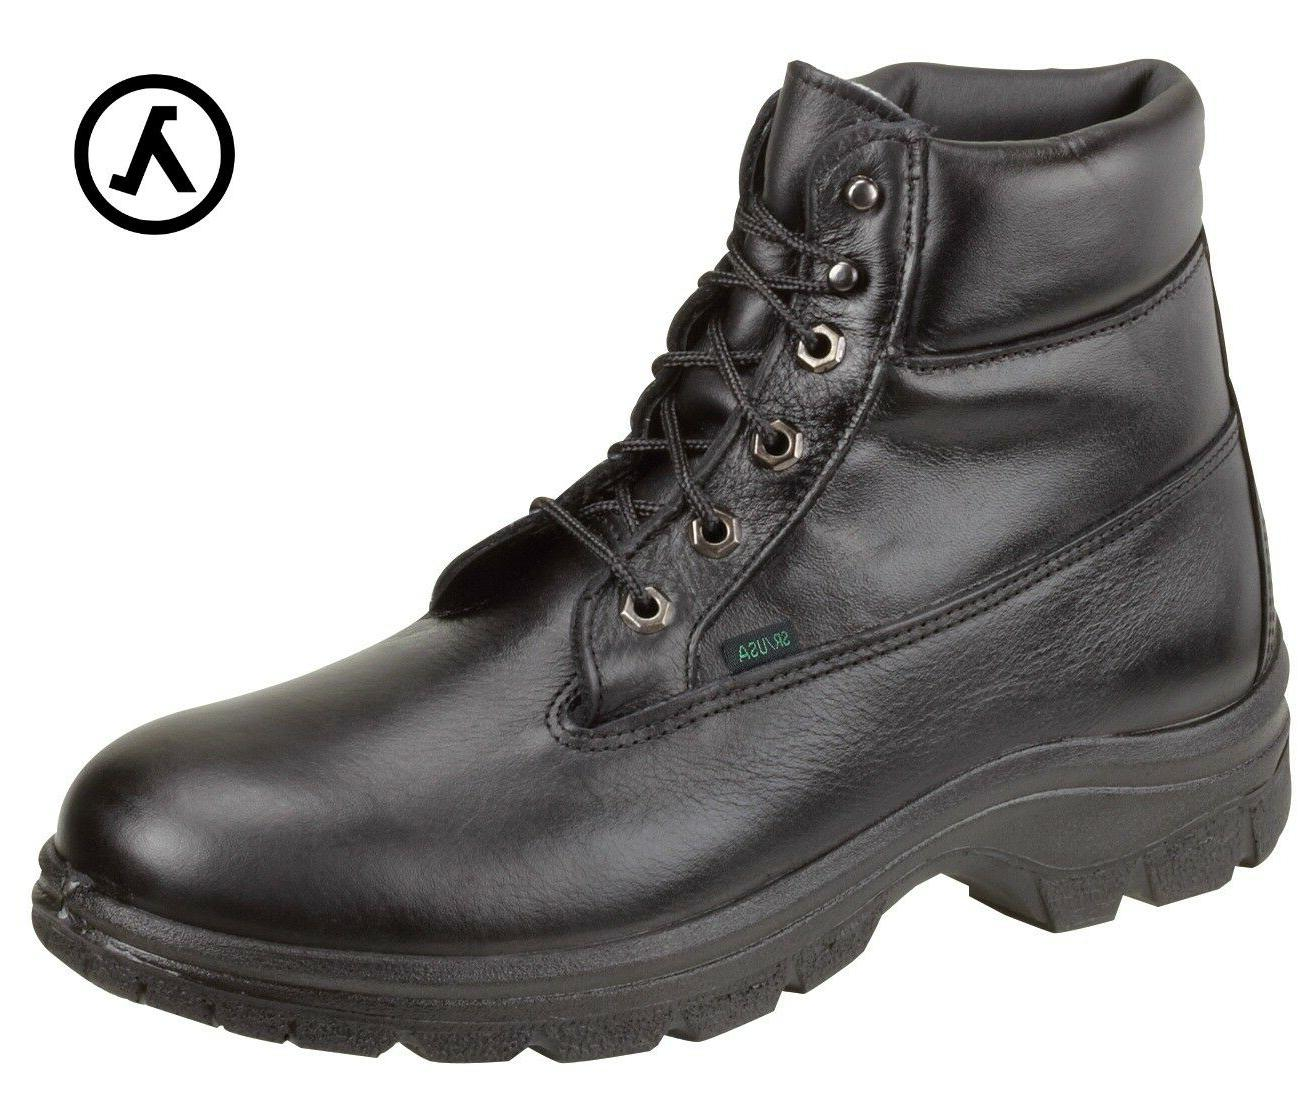 THOROGOOD WOMEN'S WATERPROOF INSULATED USA MADE WORK BOOTS 5